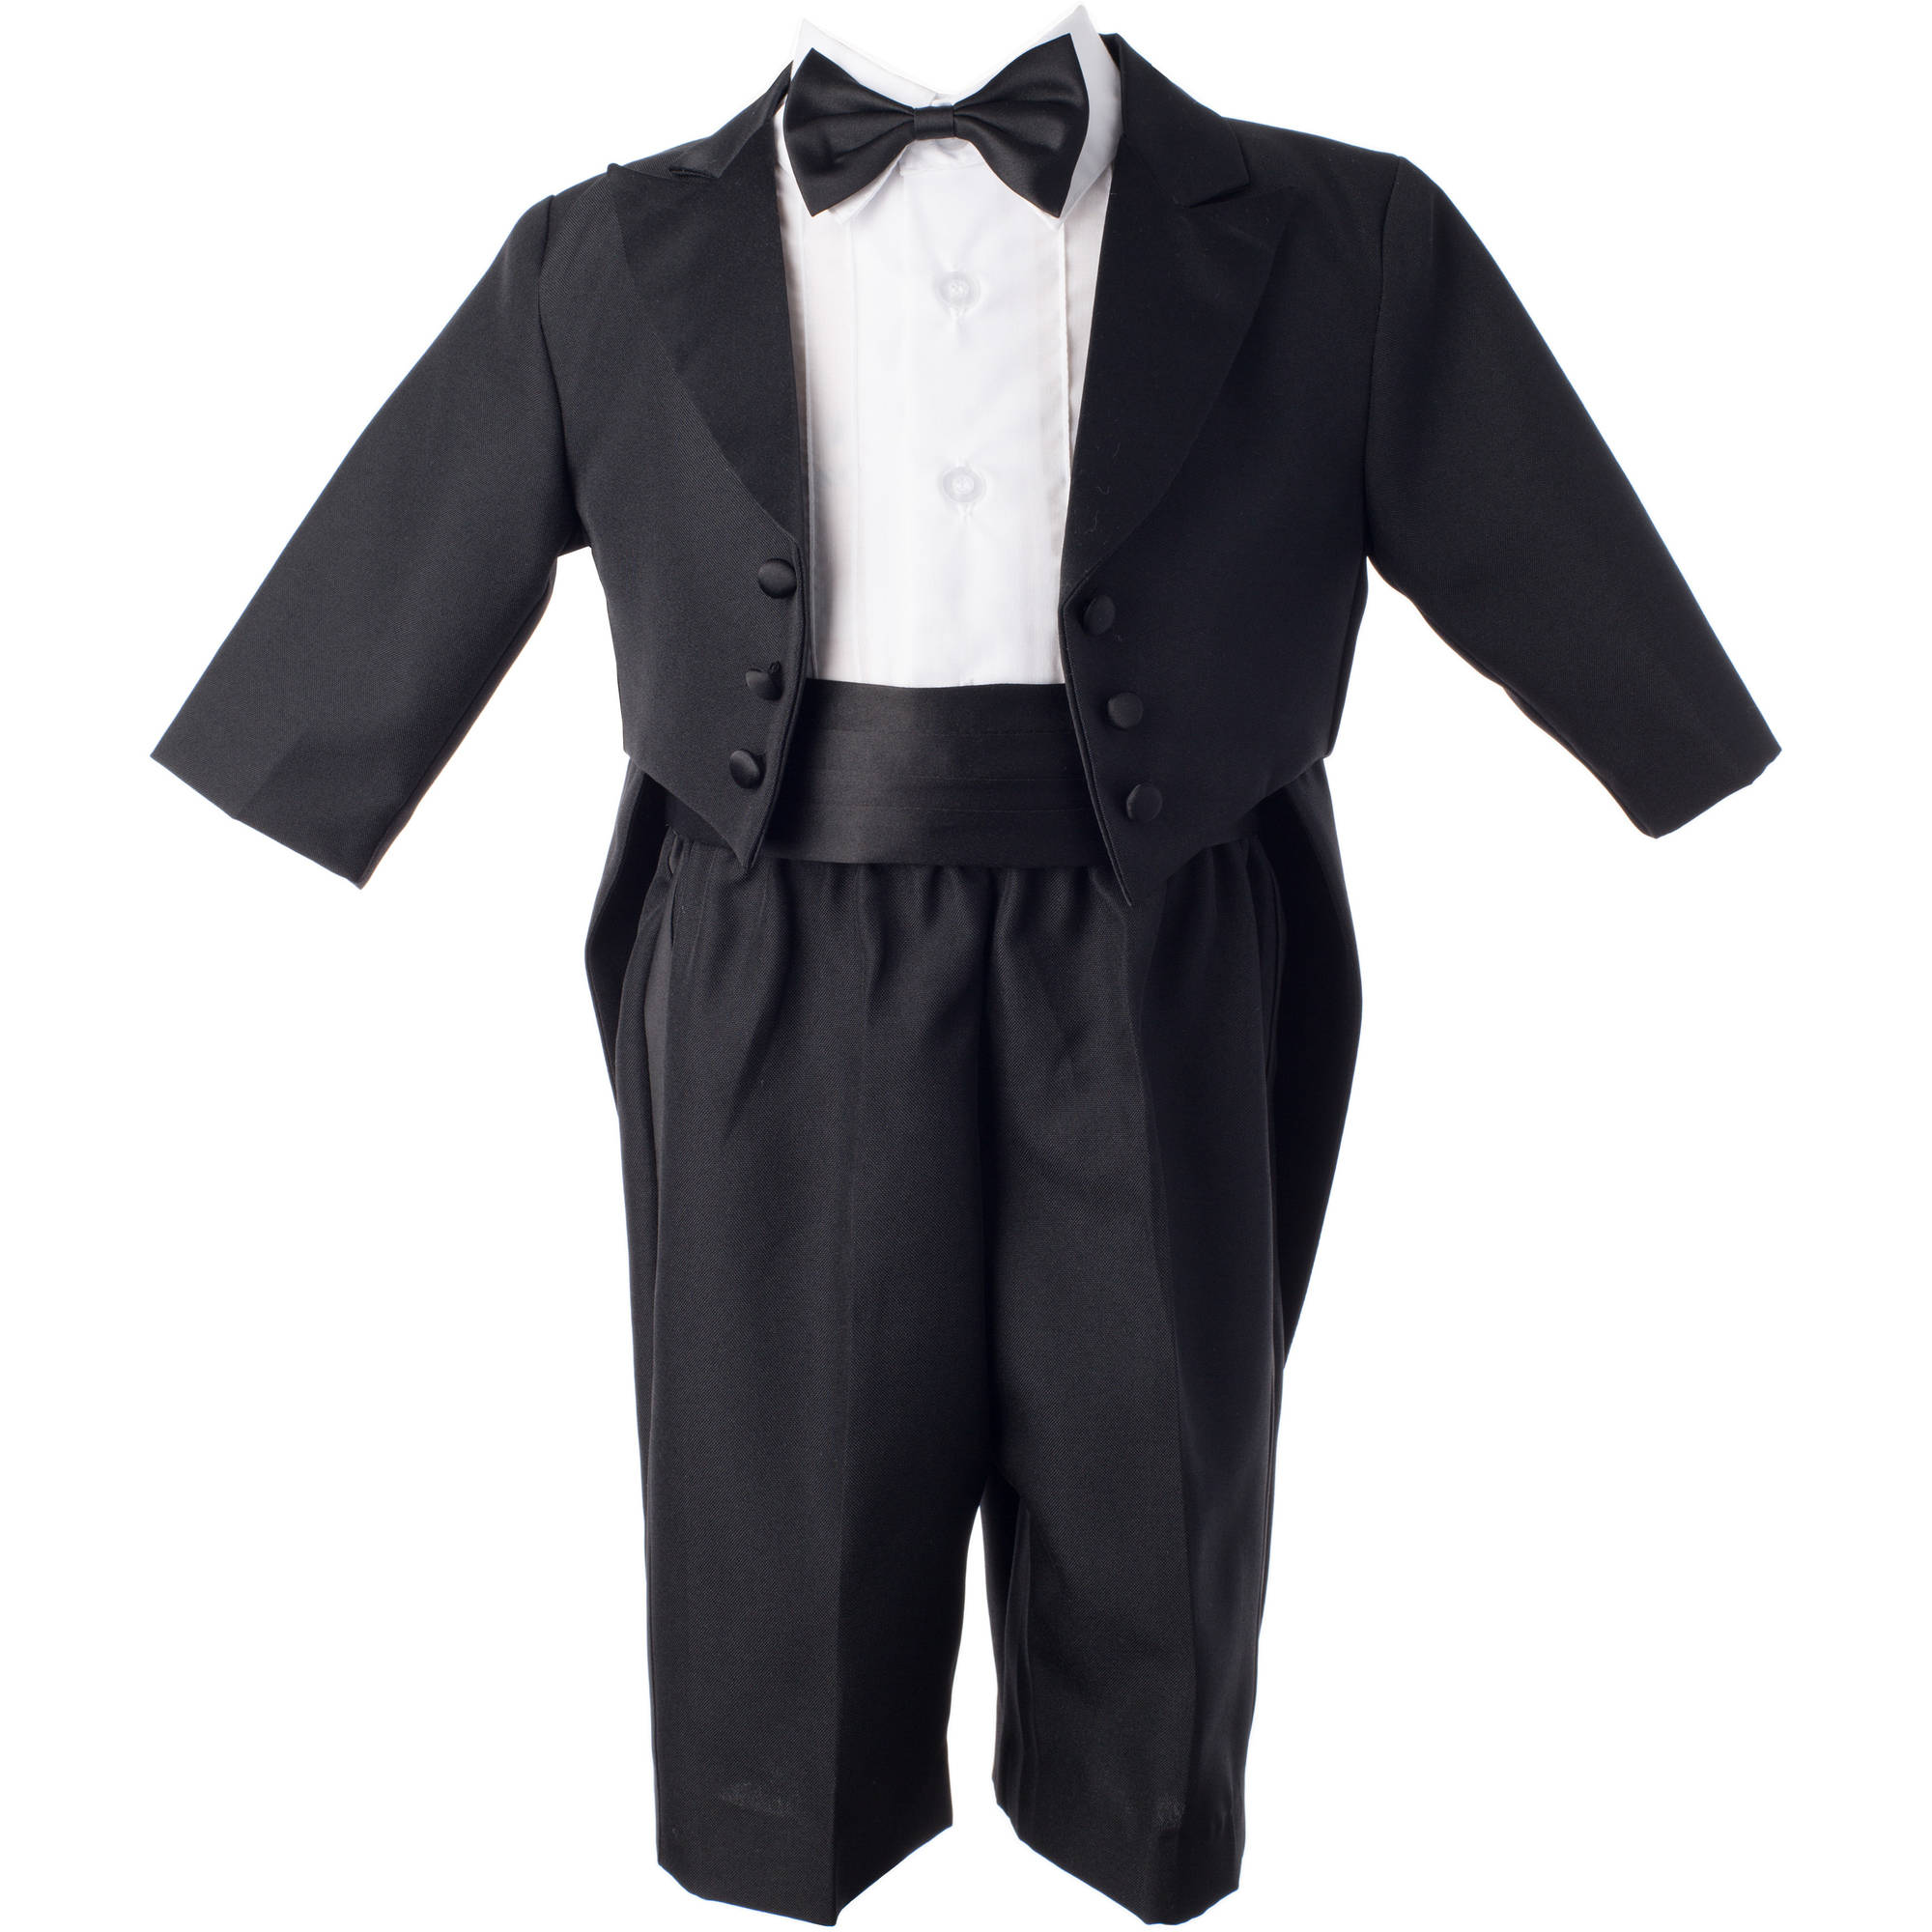 Christening Baptism Newborn Baby Boy Special Occasion Real 4 Piece Tuxedo Outfit Suit With Tails